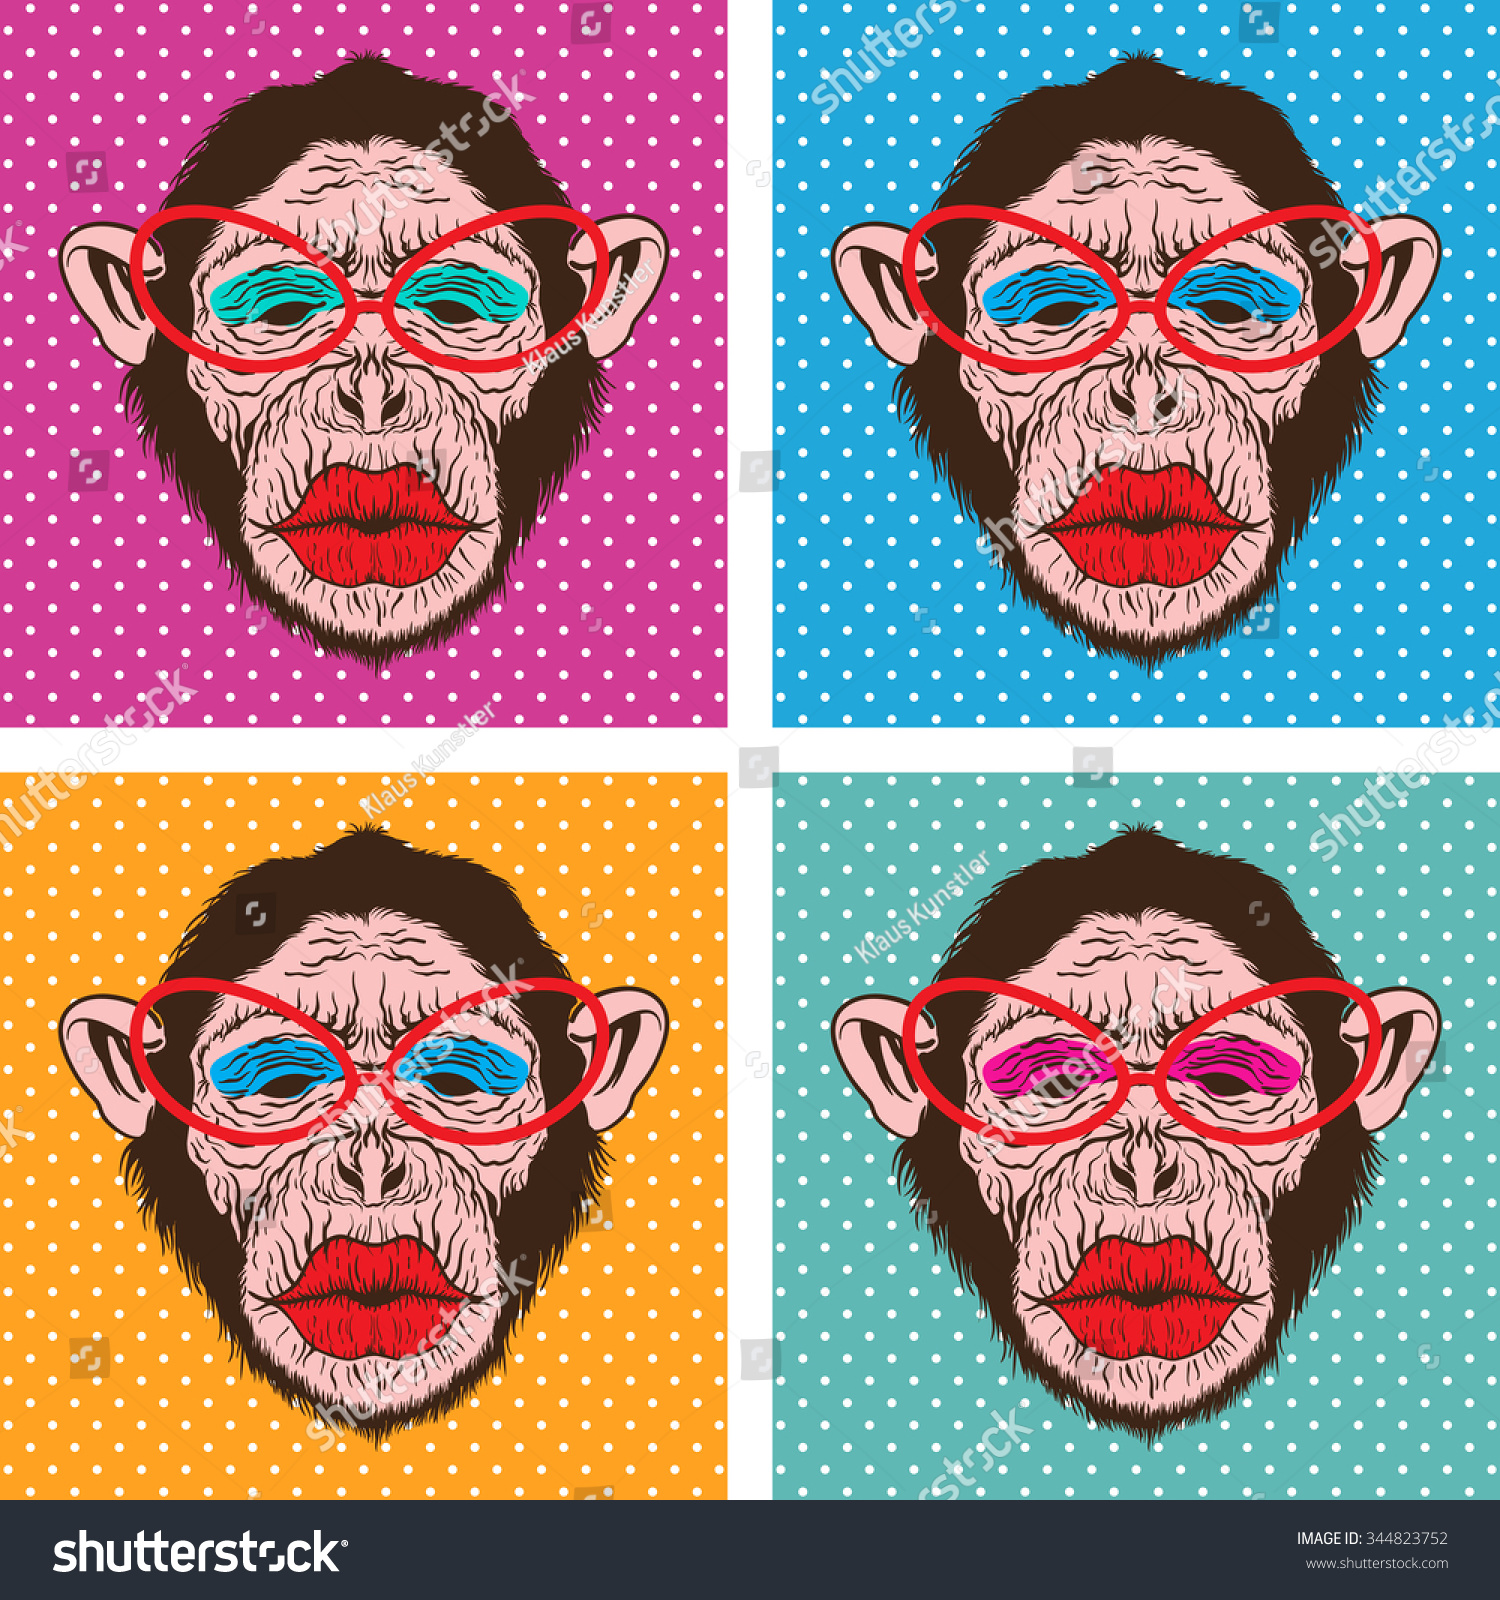 popart style illustration on hipster chimpanzee stock vector